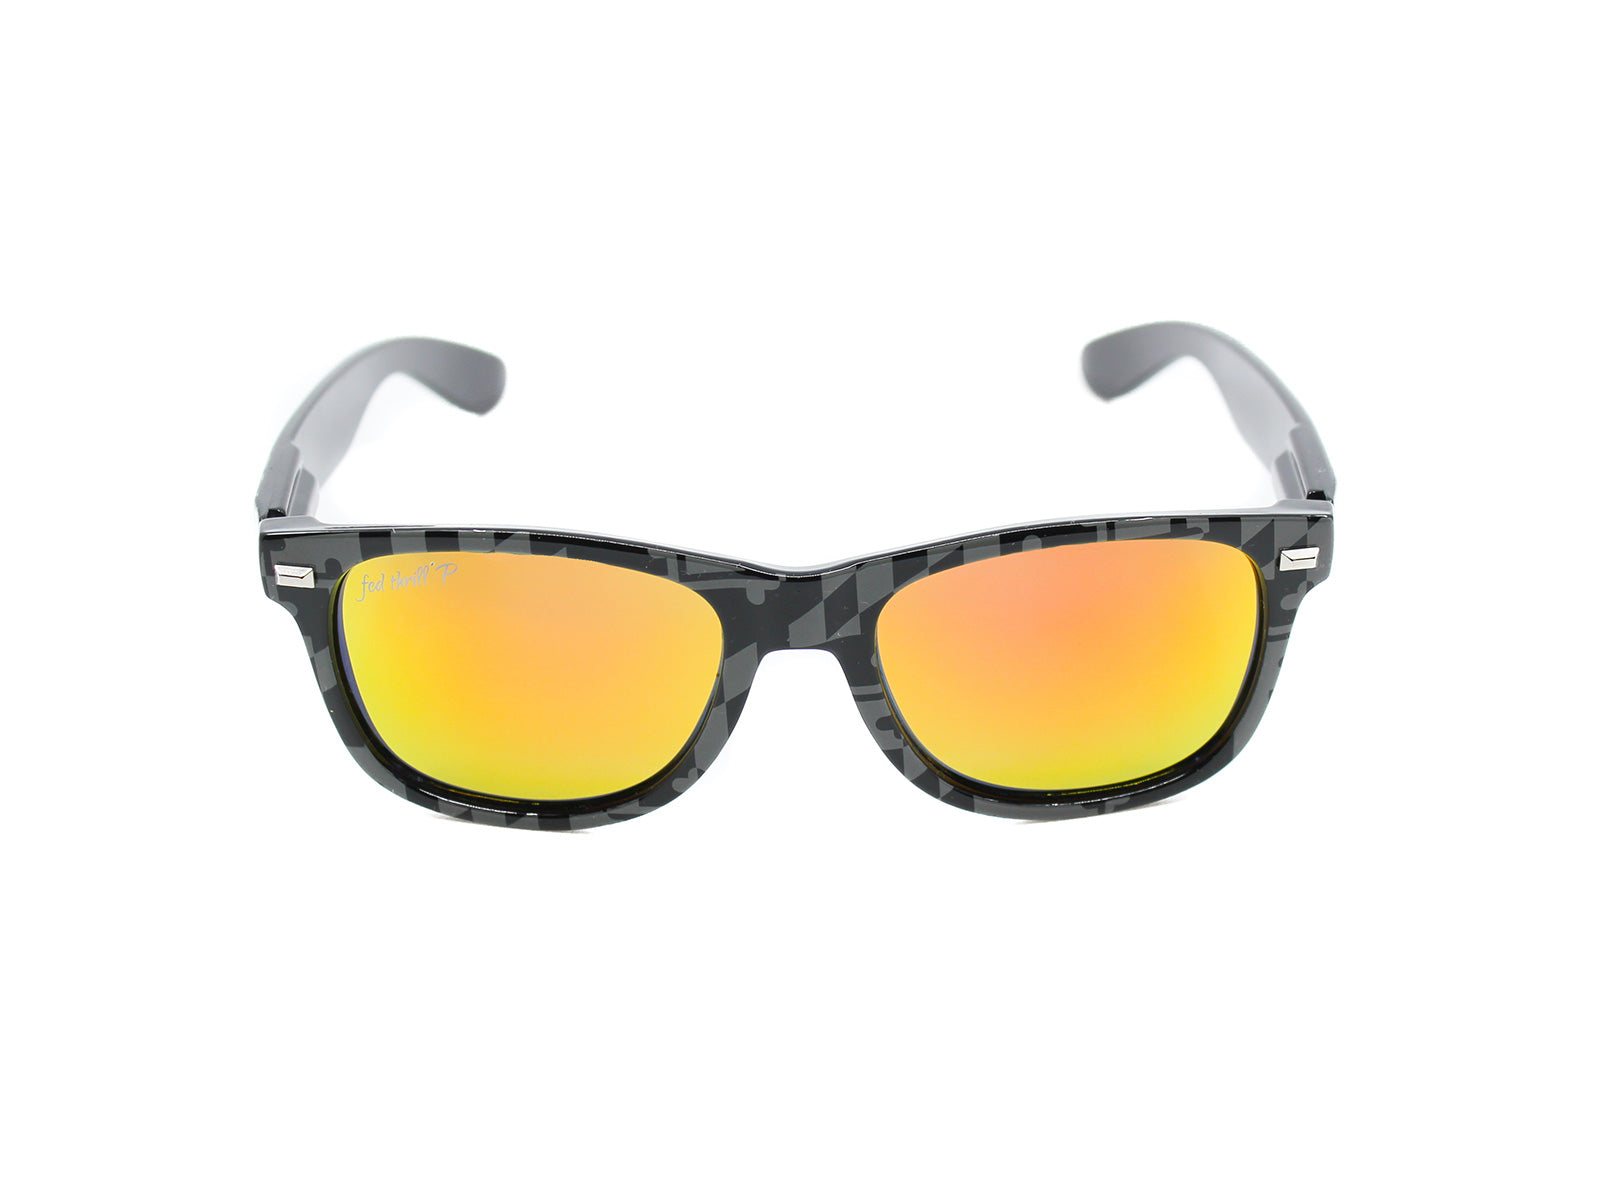 Fultons - MD Stealths II: Black & Gray MD Flag / Orange Polarized